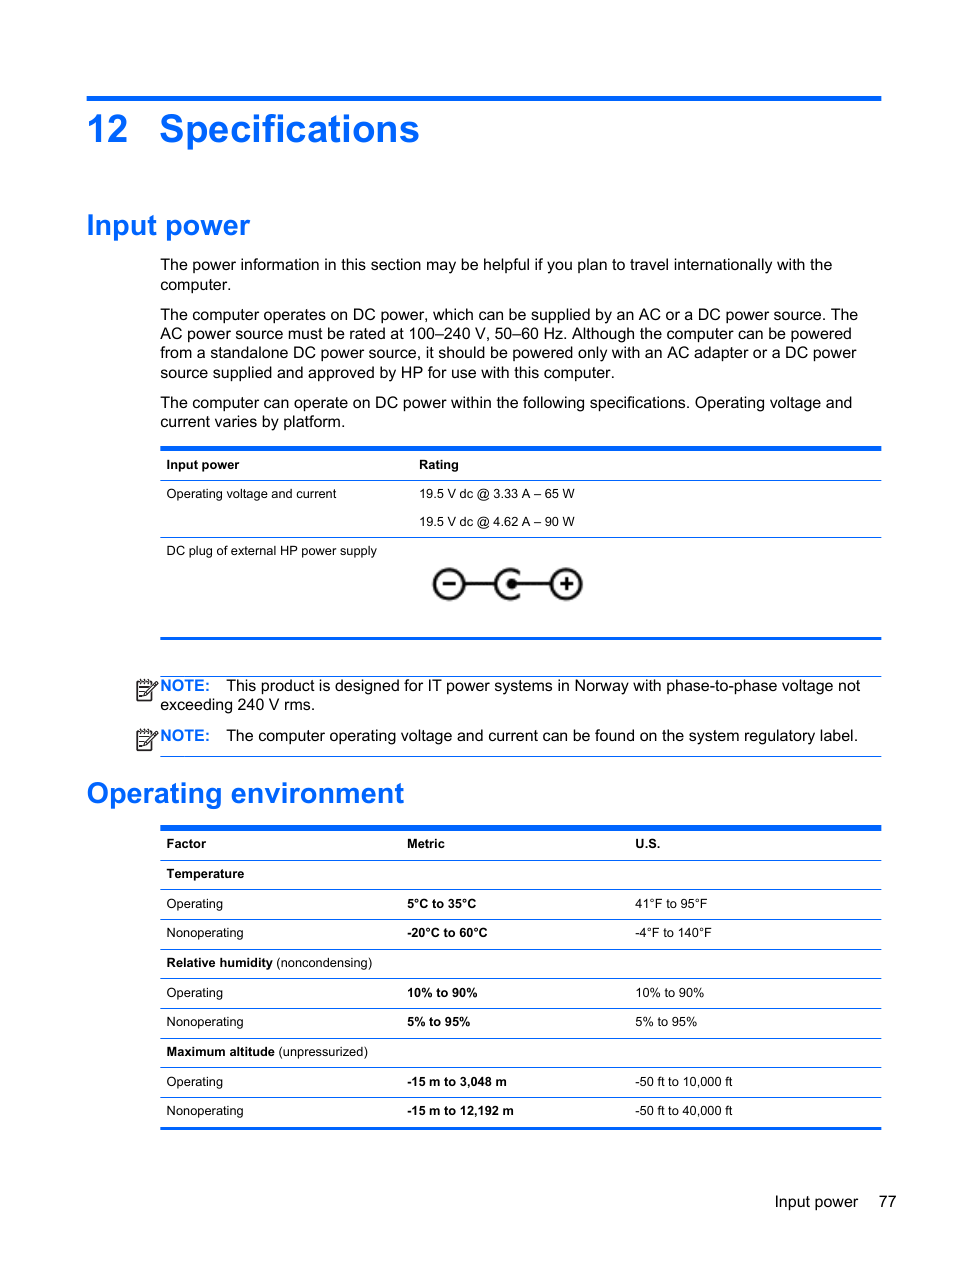 Specifications, Input power, Operating environment | HP